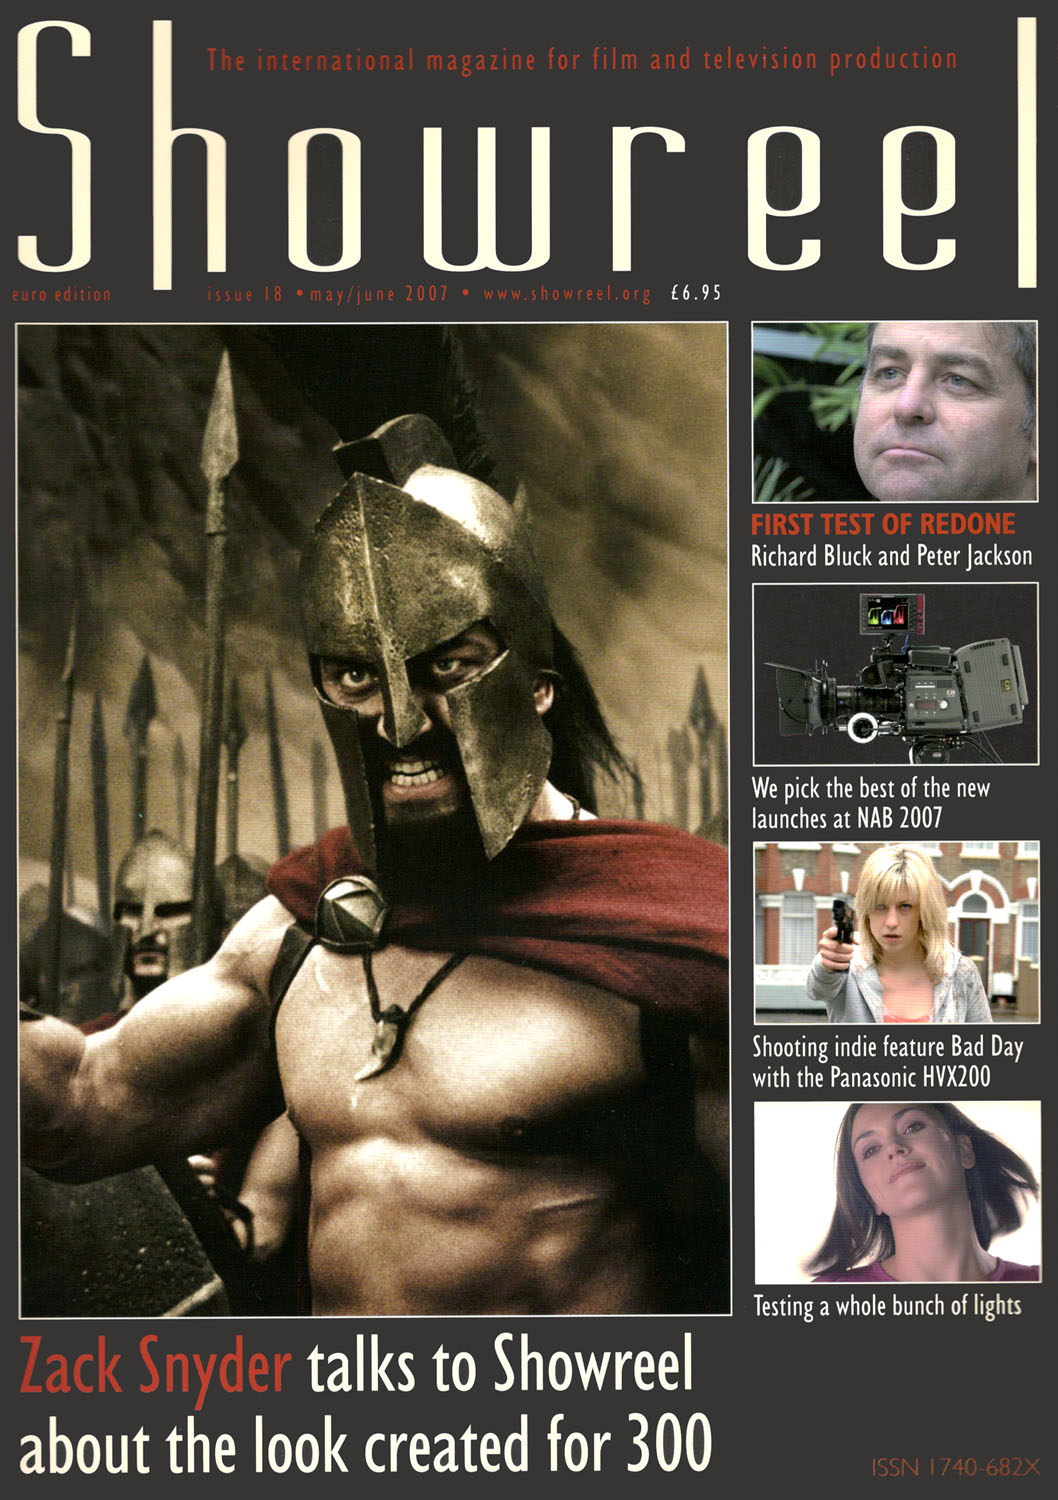 showreel_cover_issue-18_may-jun-2007_euro-edition_[zachsnyder]_crop_[smal]_1058x1500_72dpi_high.jpg